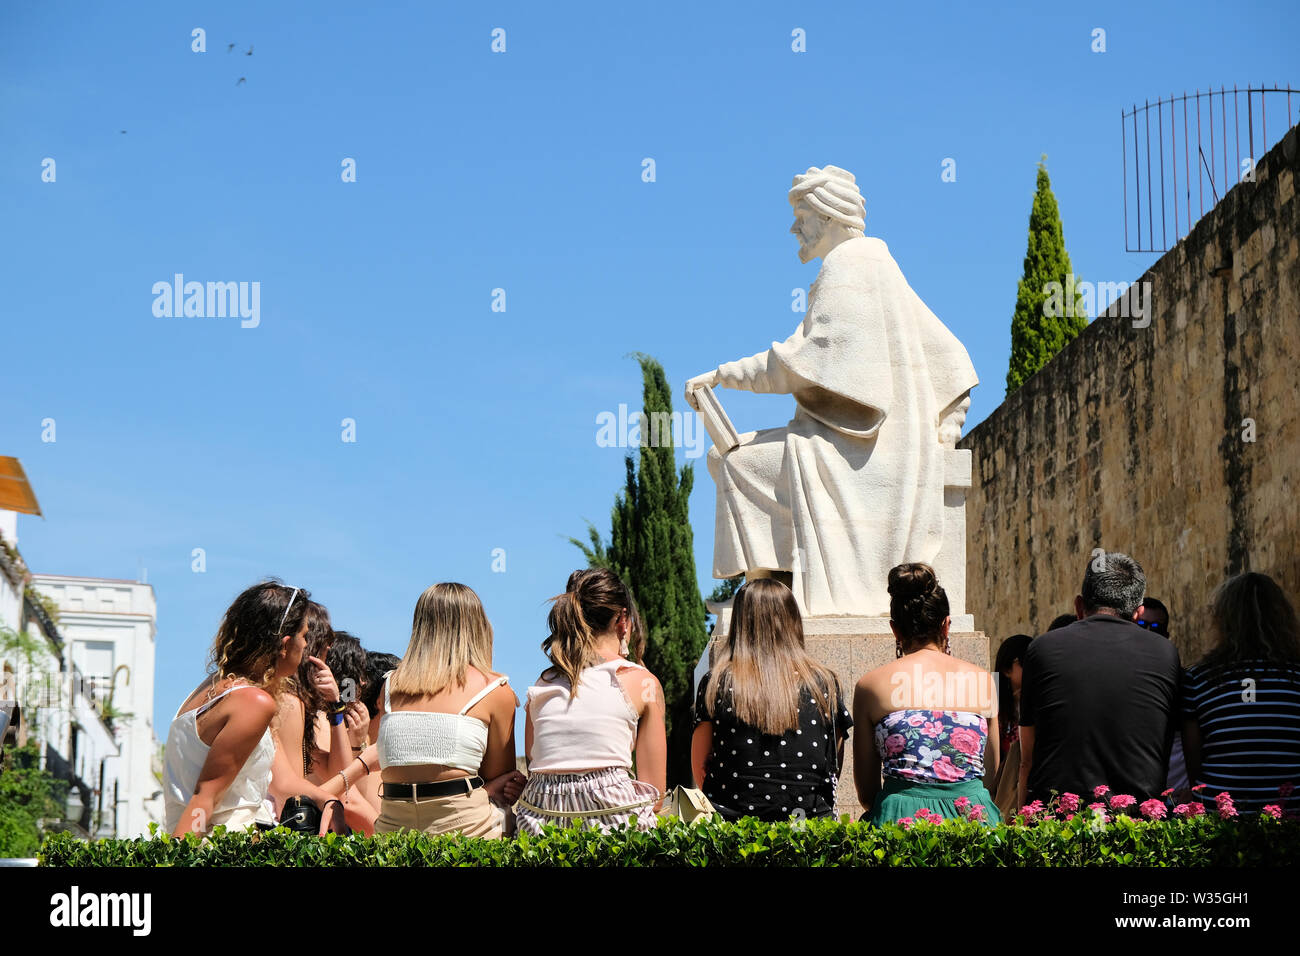 Statue of medieval philosopher Averroes in Cordoba, Spain, with modern students at the base of the statue as if in class listening to him teach. - Stock Image